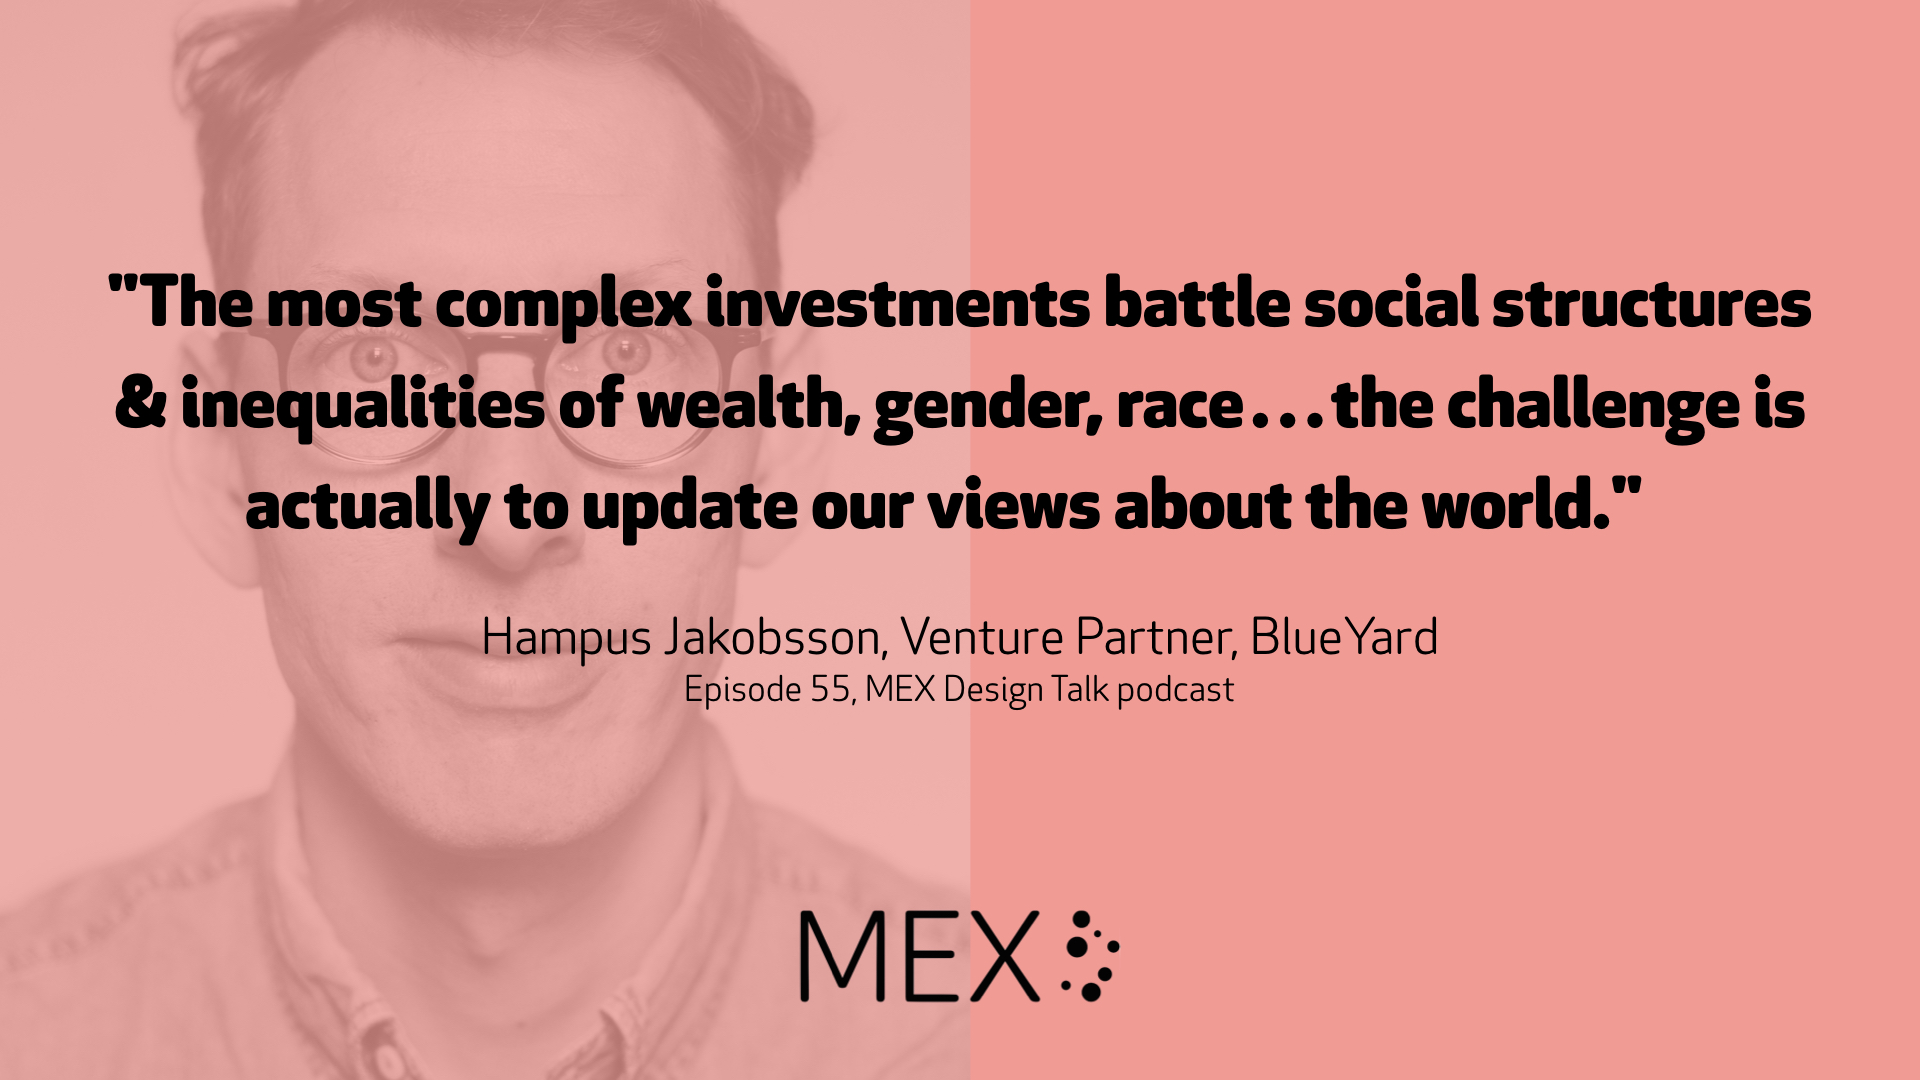 """The most complex investments battle social structures & inequalities of wealth, gender, race…the challenge is actually to update our views about the world."" Hampus Jakobsson, Venture Partner, BlueYard Episode 55, MEX Design Talk podcast"